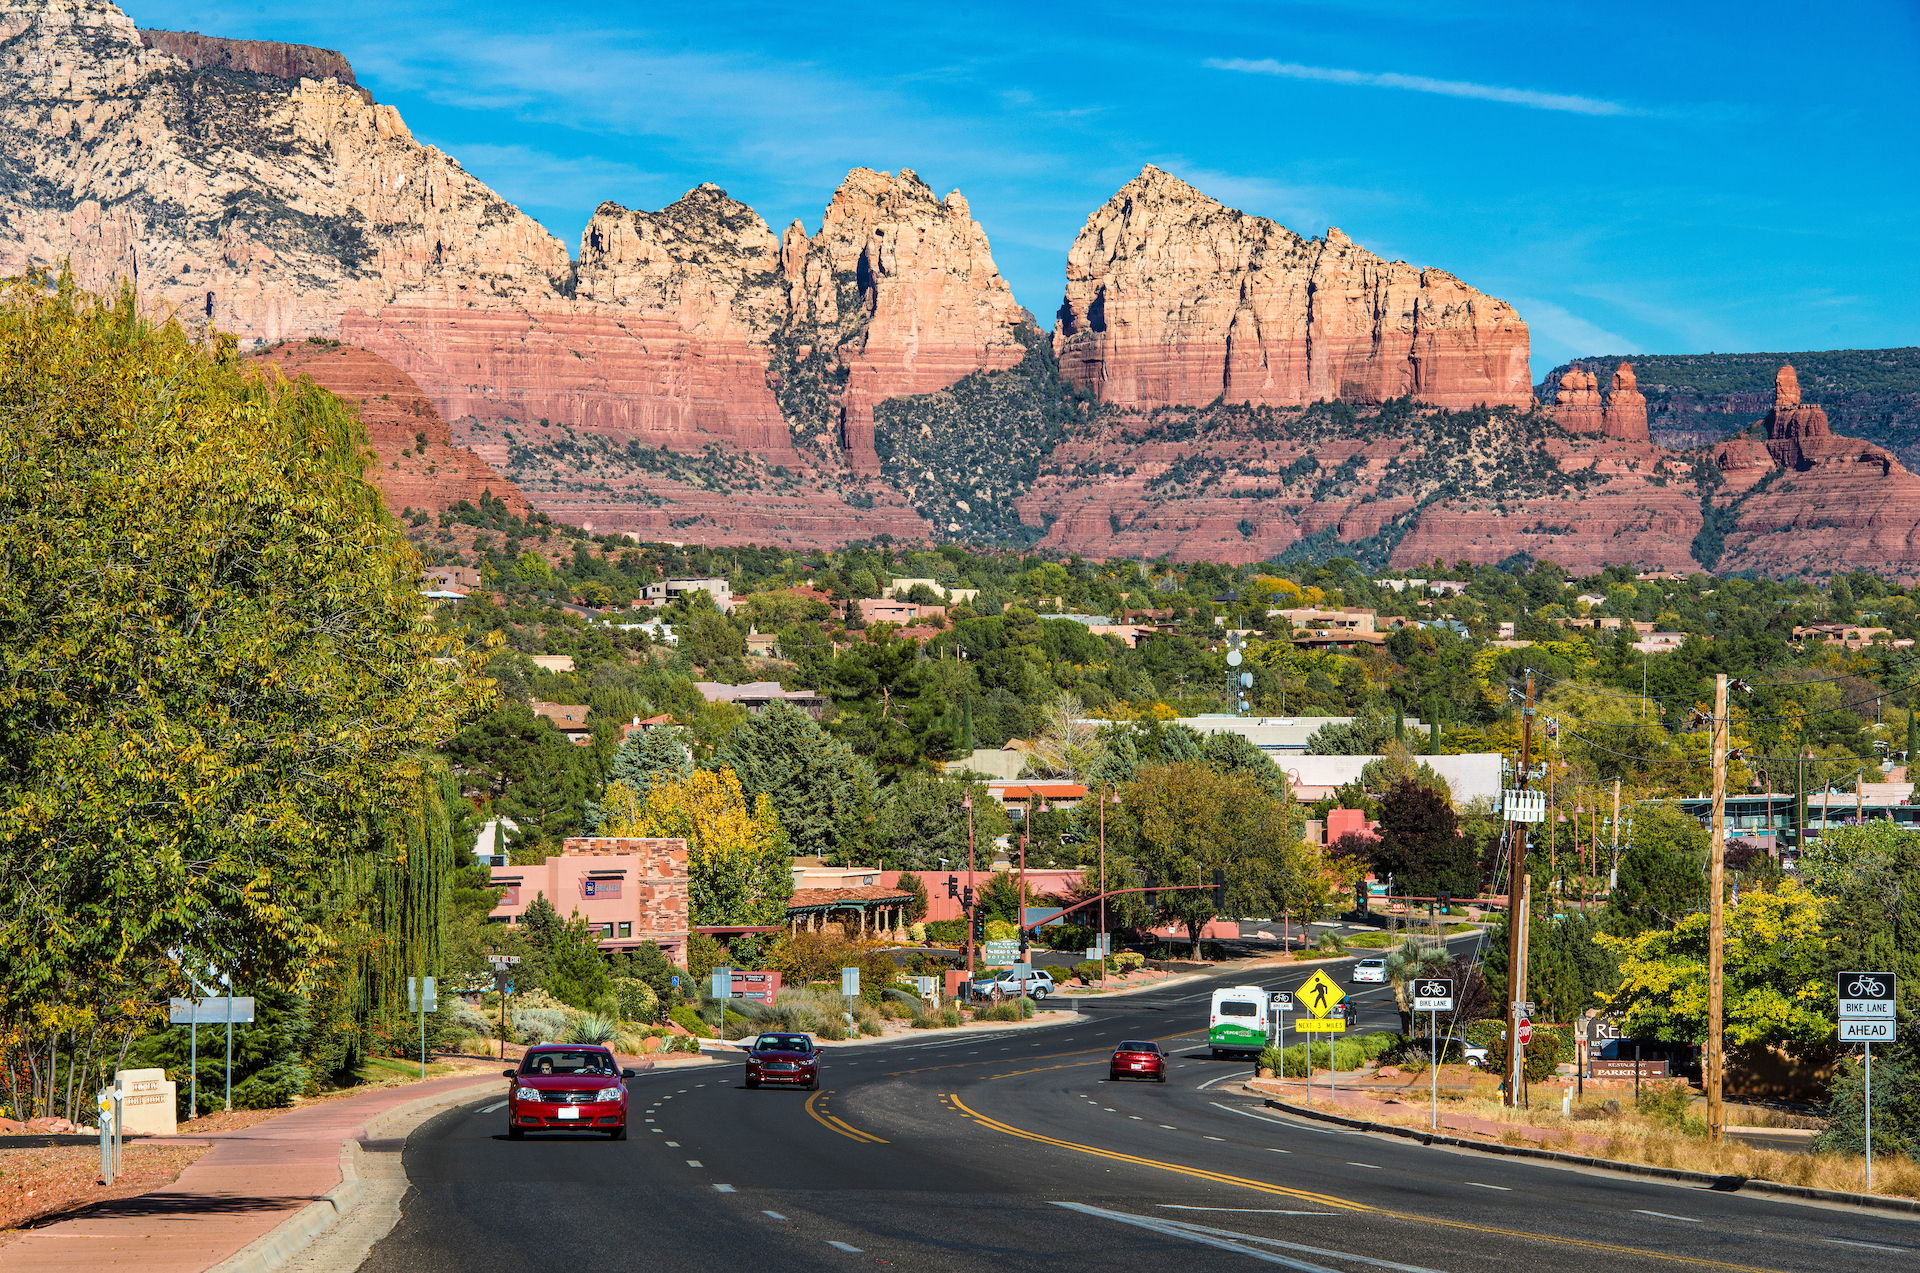 cars on road with red rocks towering in the background